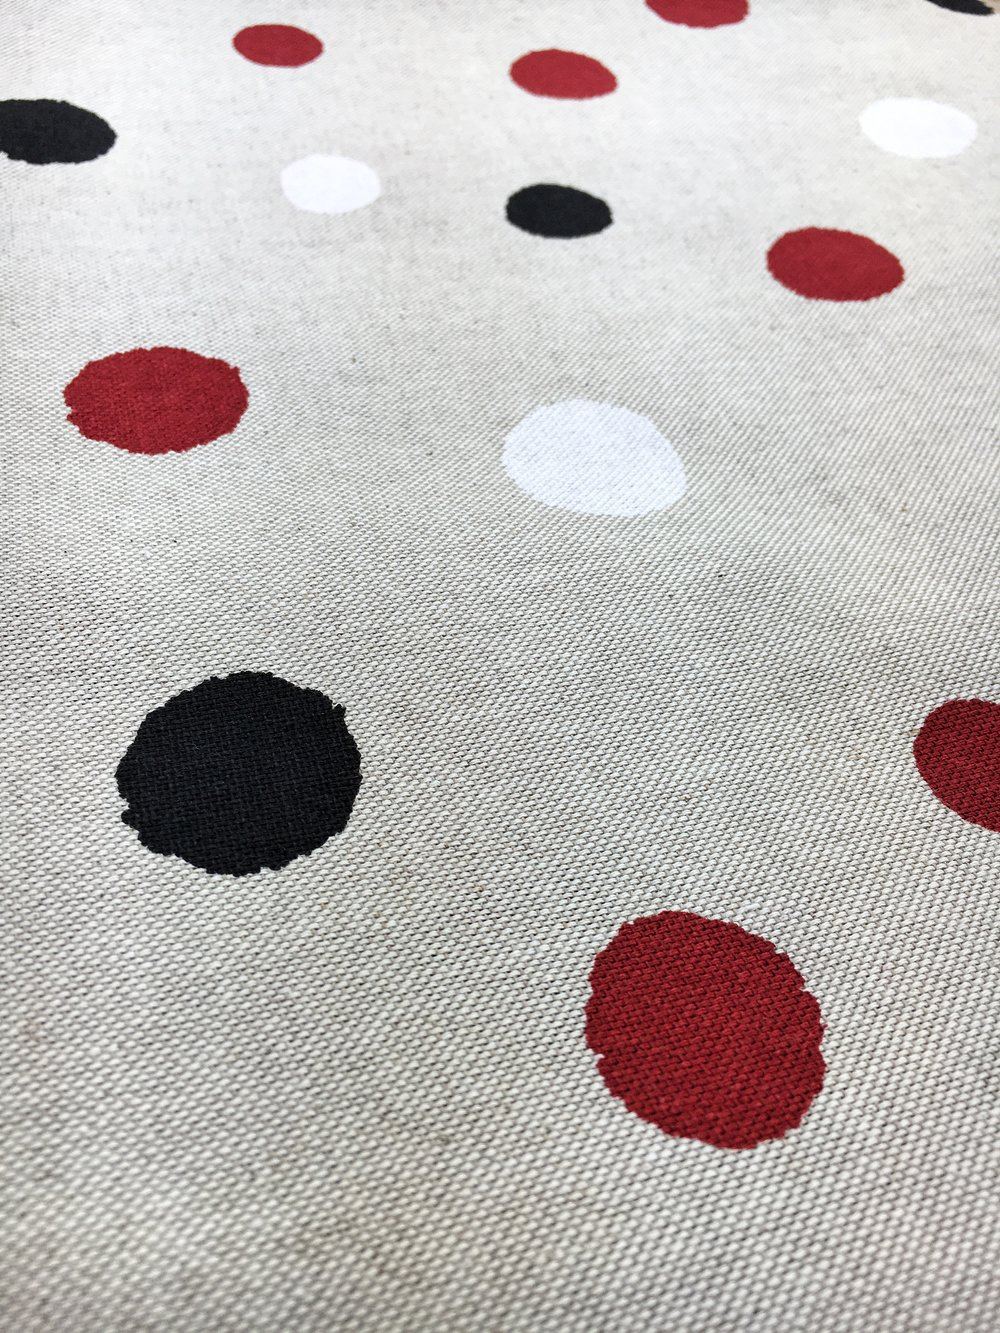 CottonFabricRedGreenDots6.jpg